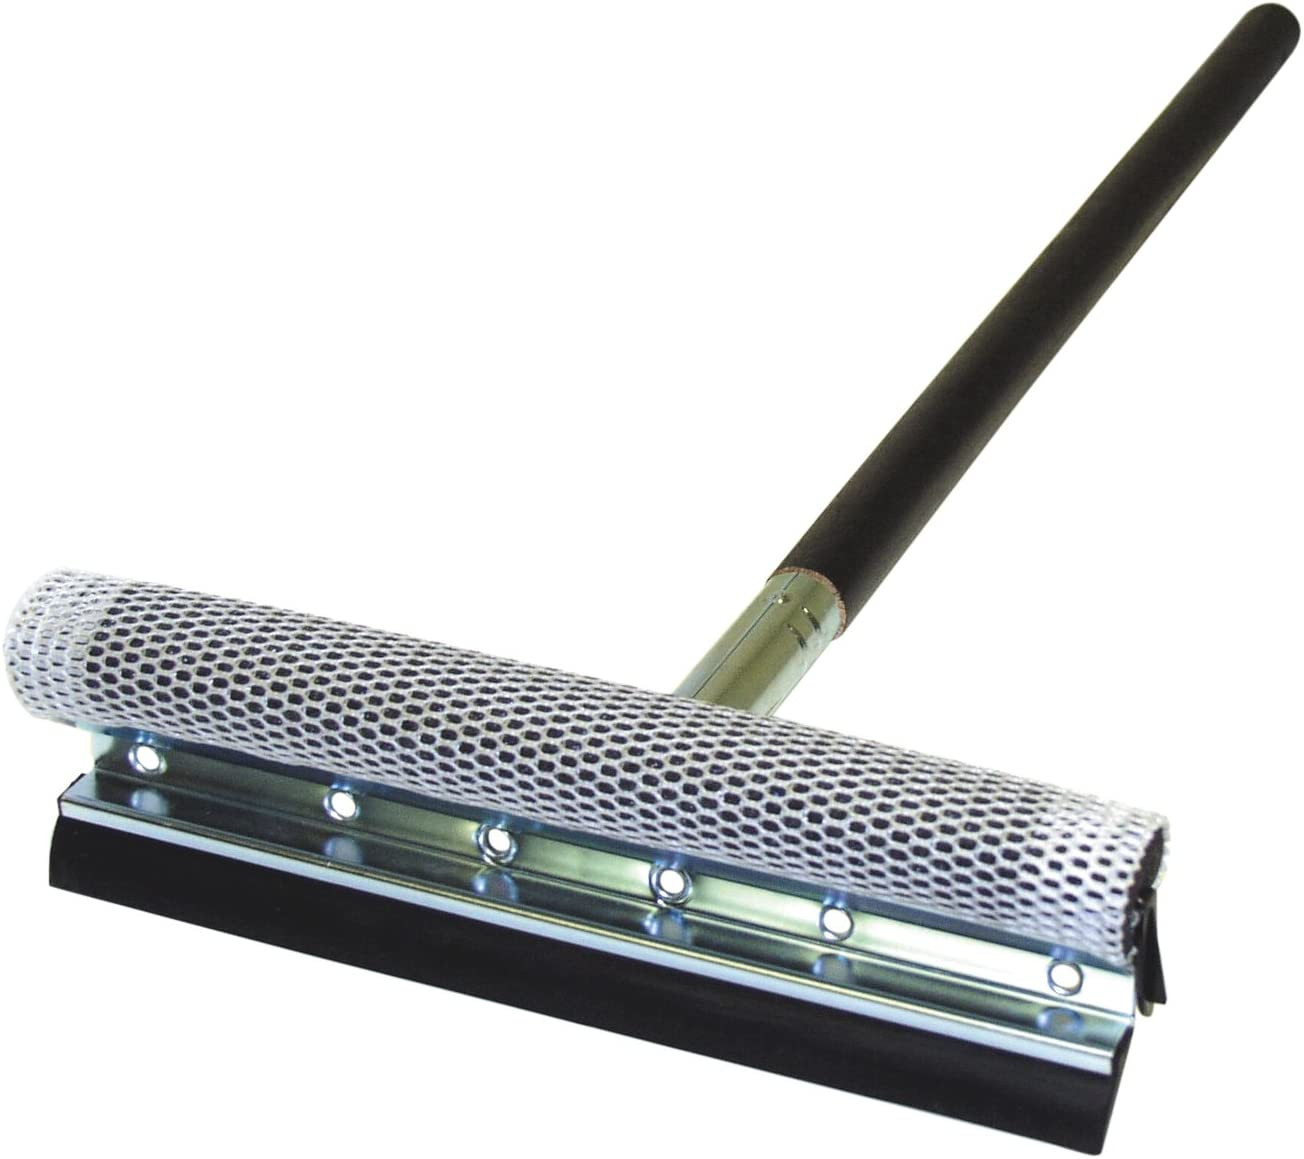 Carrand 9058 Black Deluxe 10 Metal Squeegee with 24 Wood Handle